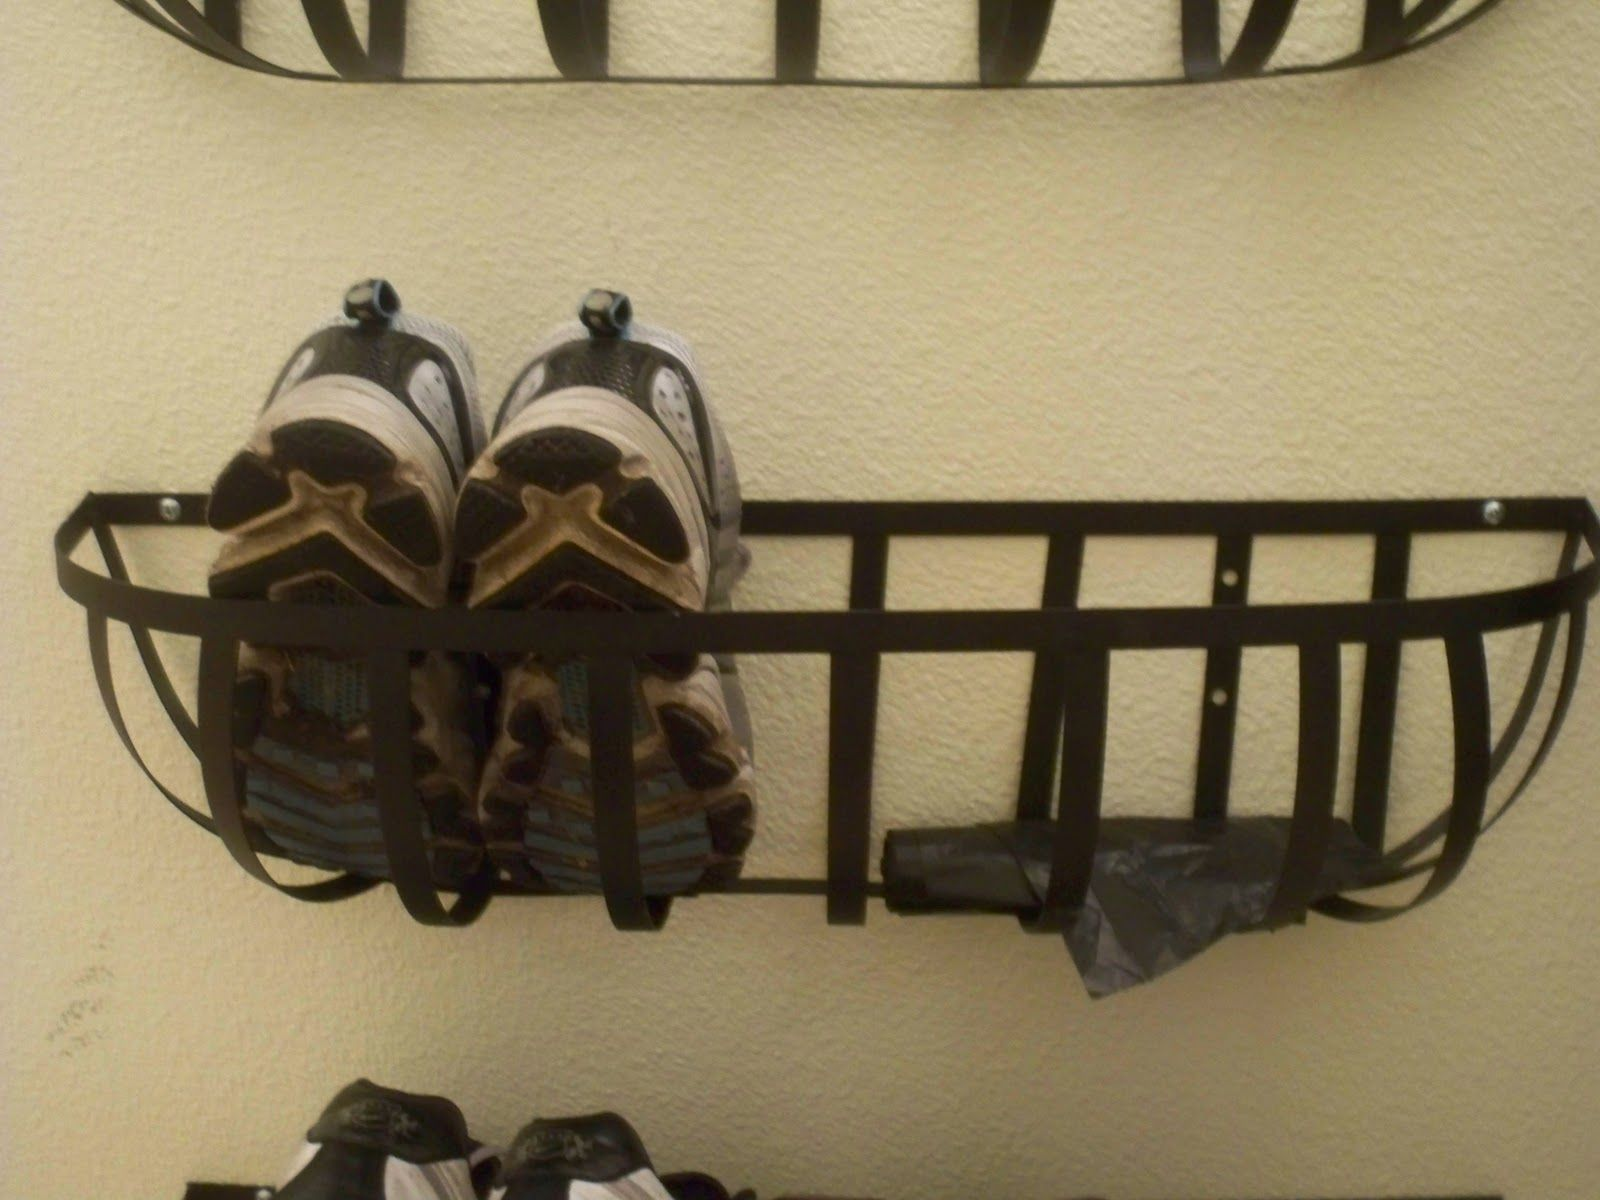 Wall Hanging Shoe Rack wall mounted shoe rack |  inspired: mudroom under $100 - part 1